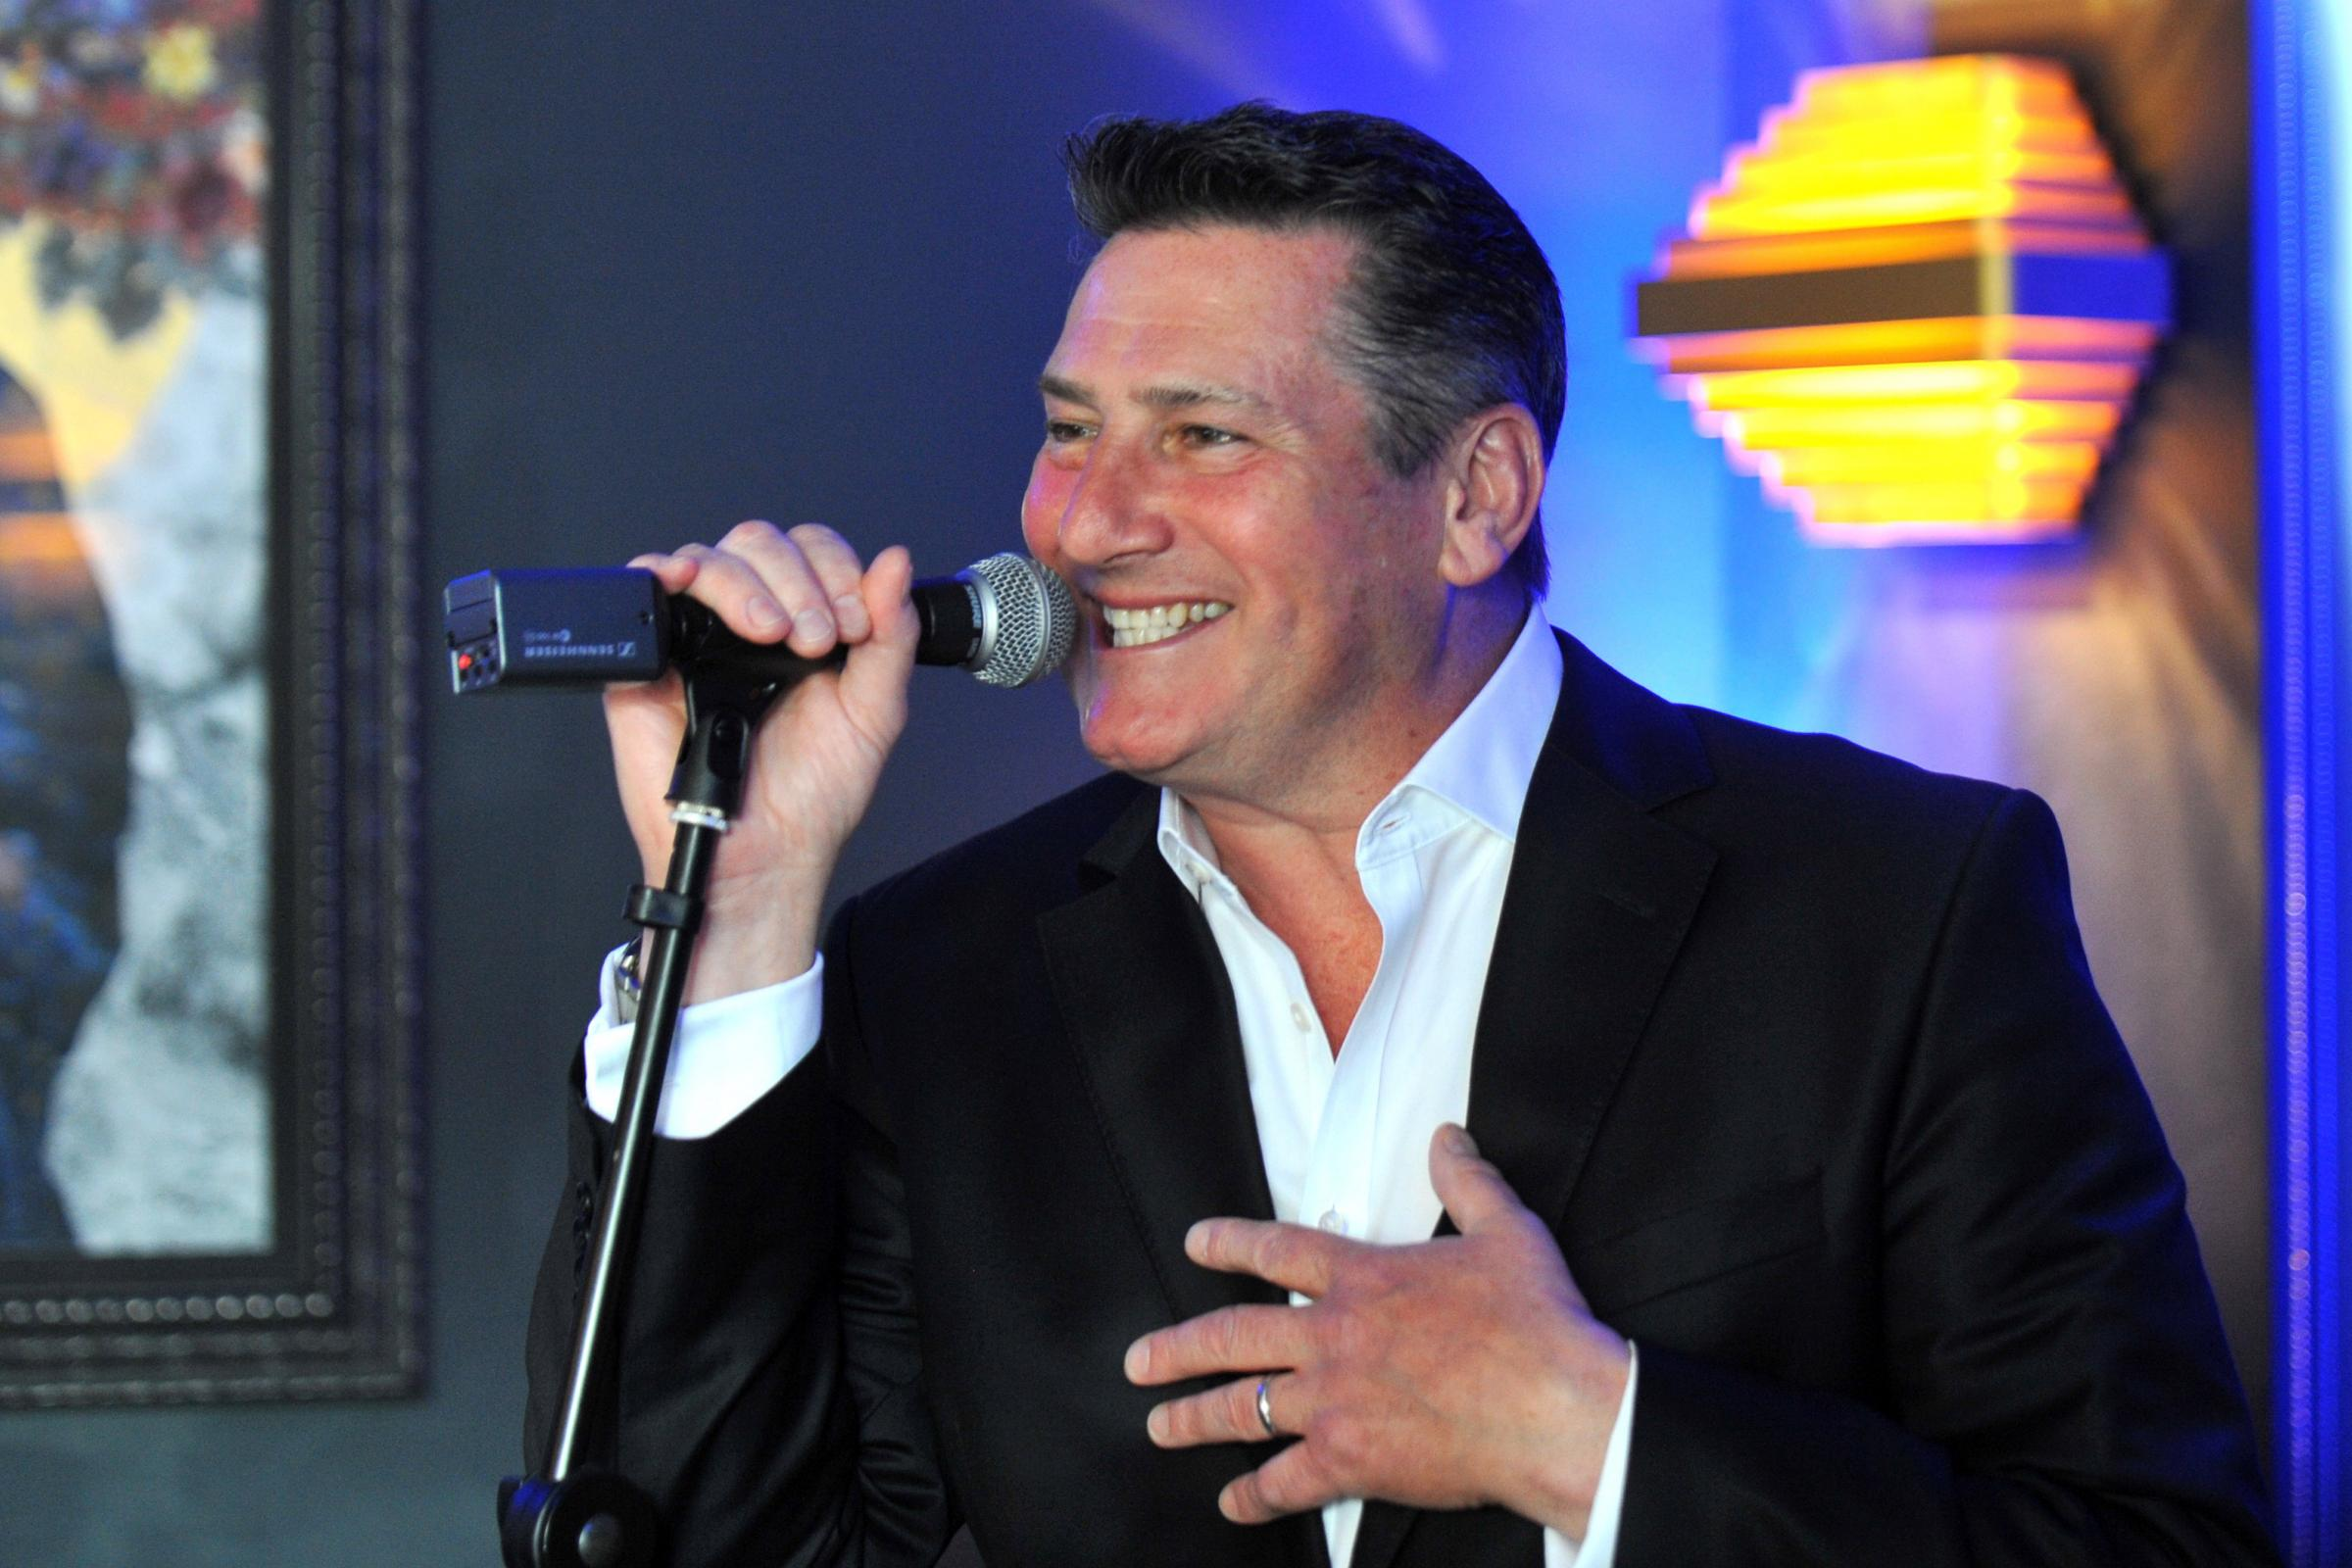 Singer Tony Hadley performing at a charity event at Ginger Pig, Brighton..